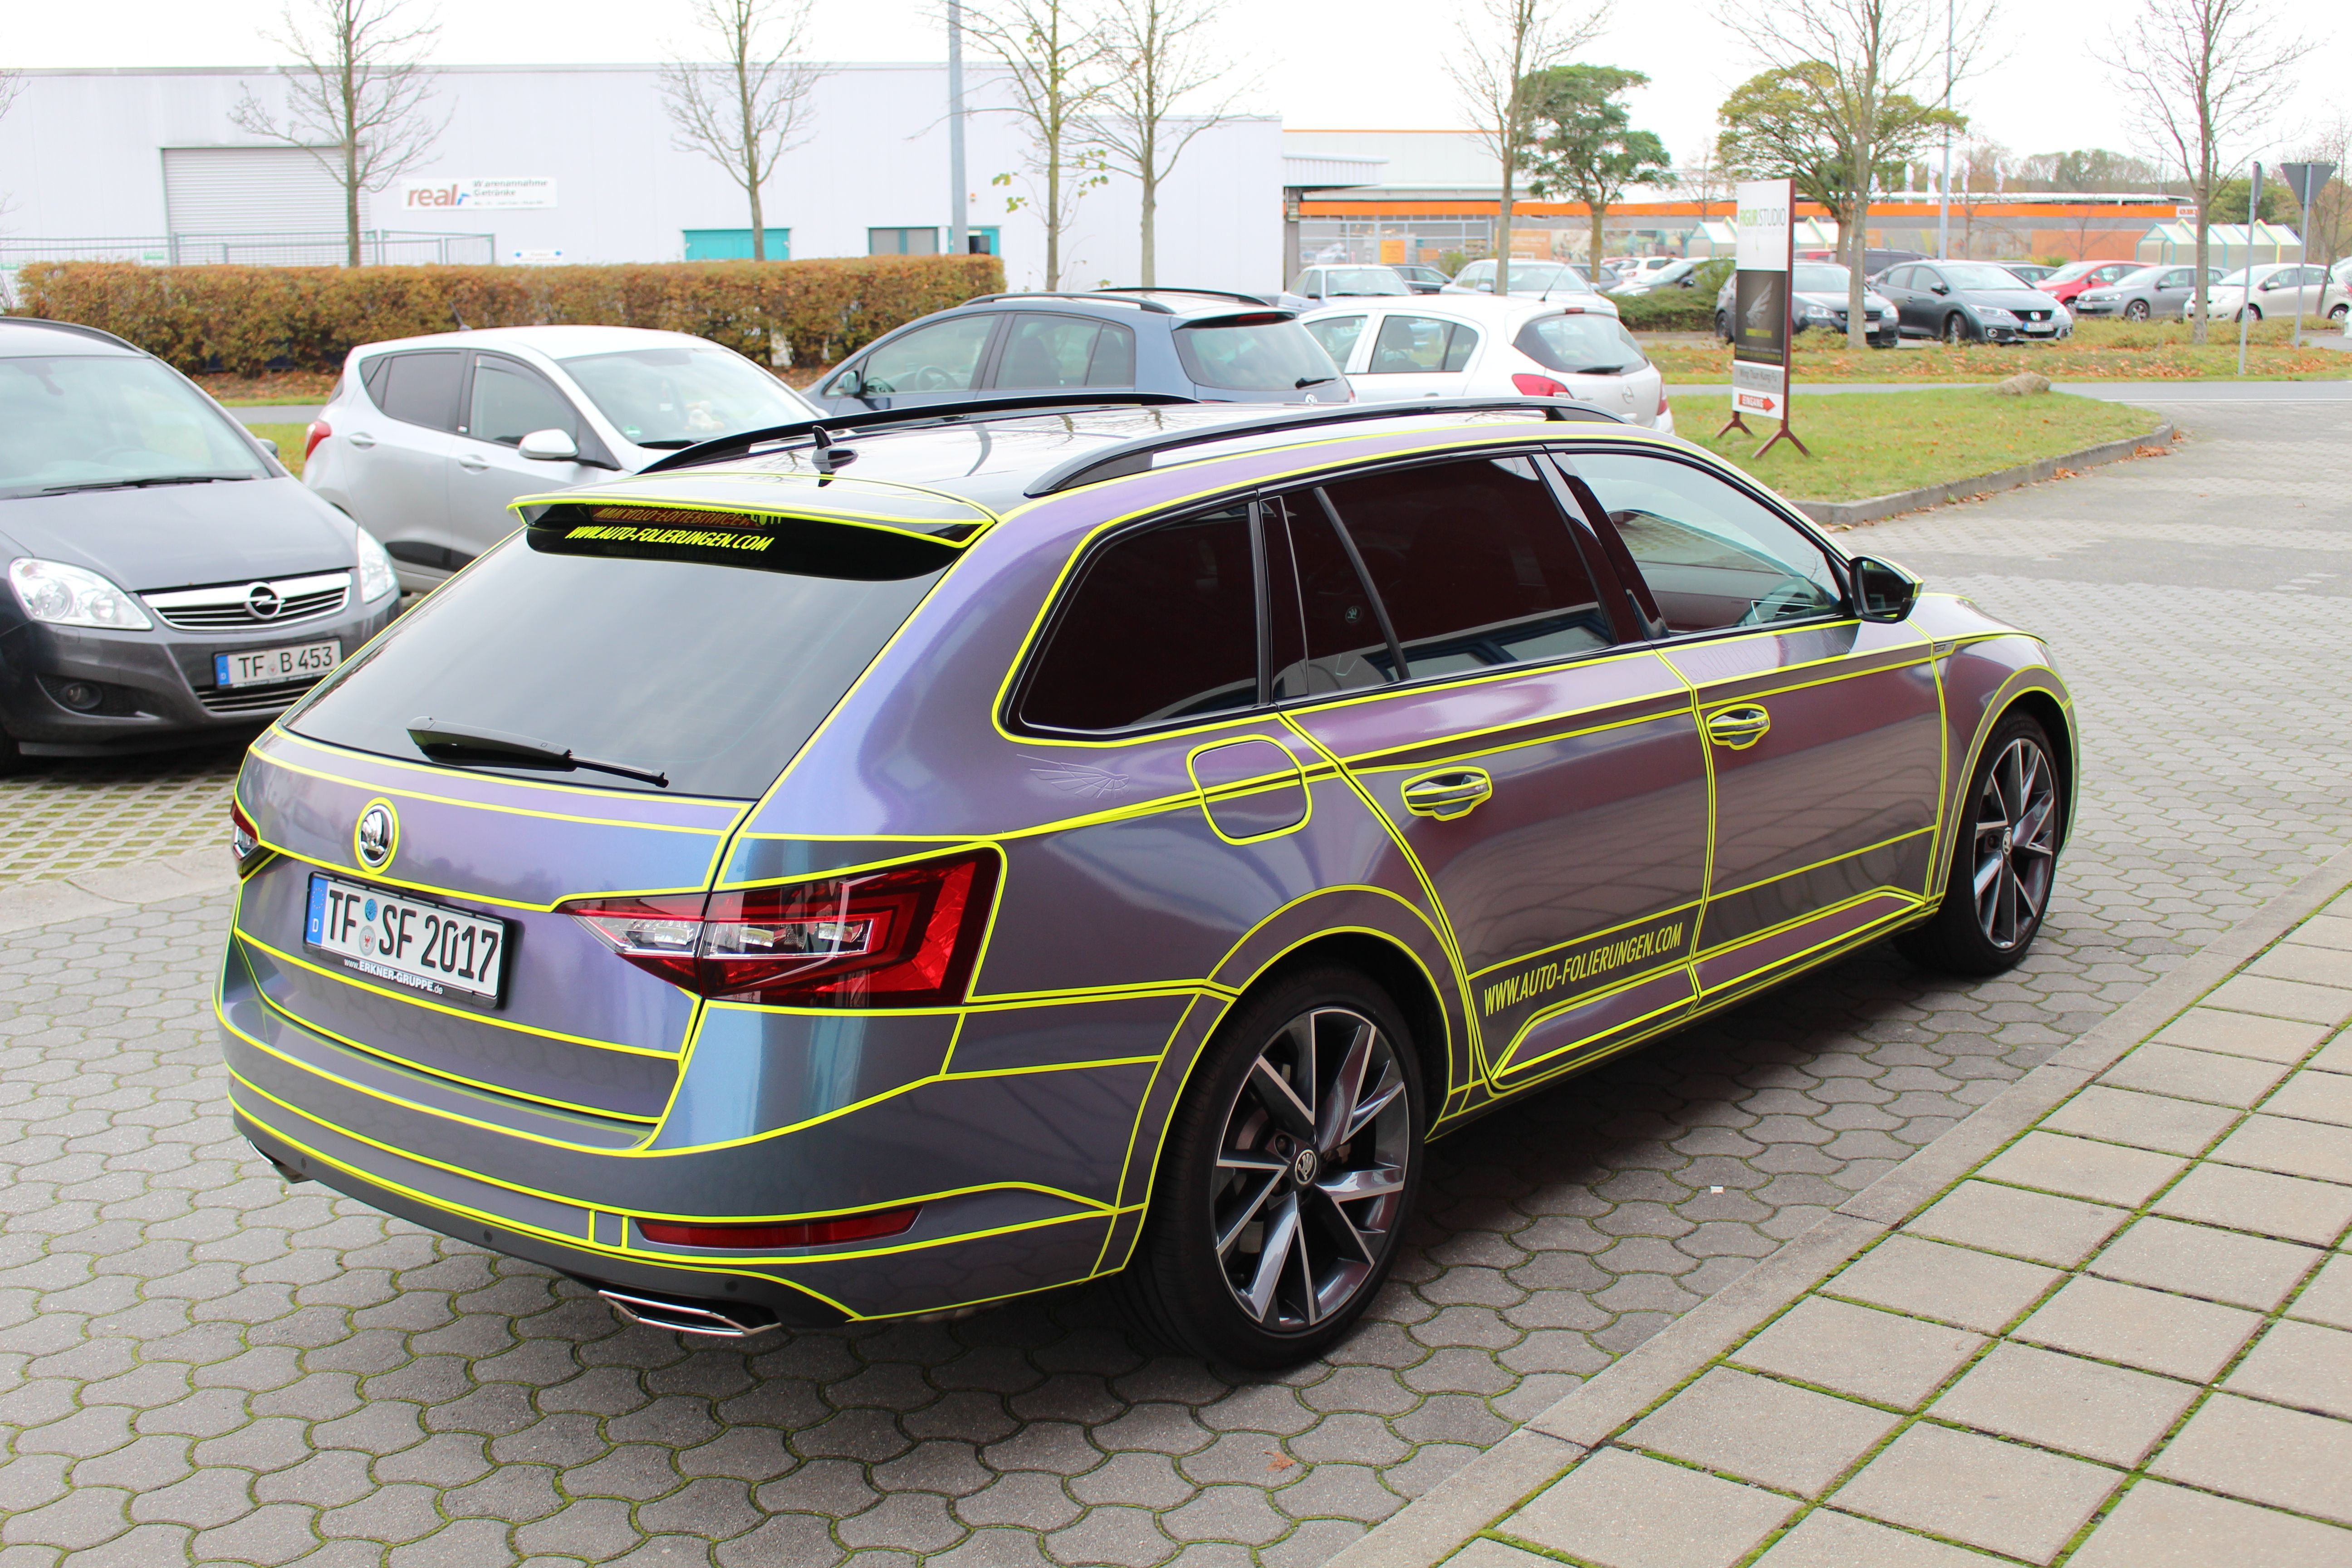 Skoda Superb Tron Wrapping Folierung Car Wrap Skoda Superb Wraps